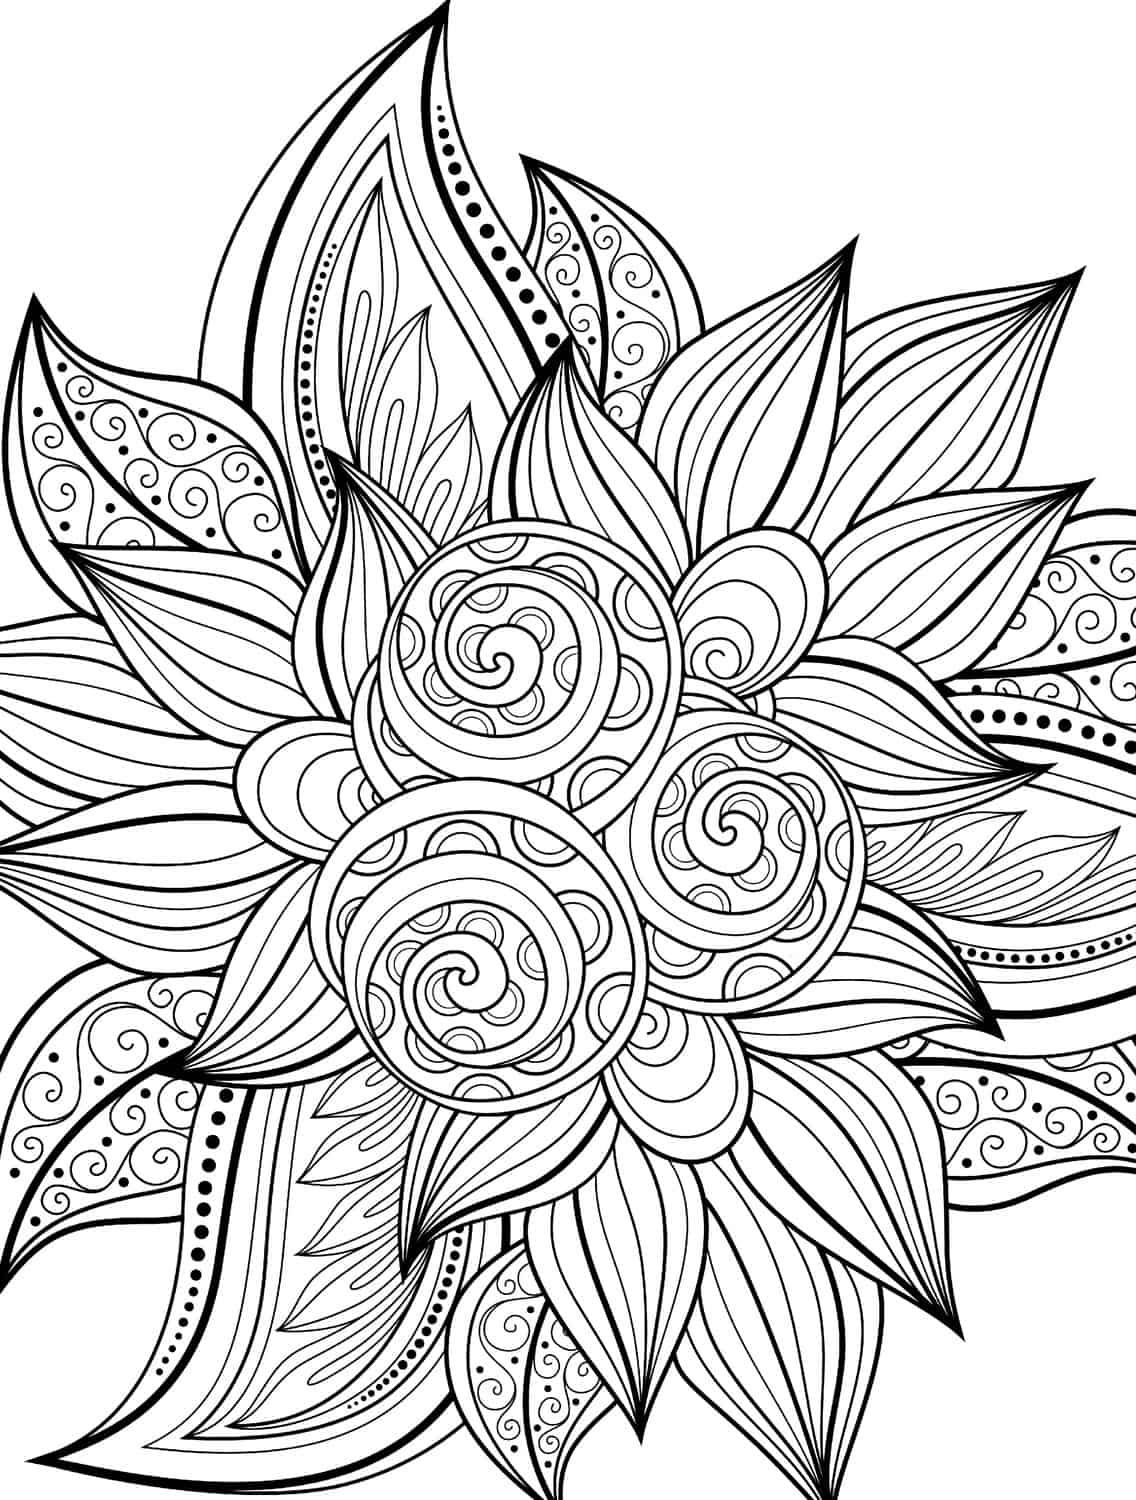 free coloring pages for adults printable free adult coloring pages pumpkin delight free pretty free printable coloring adults for pages